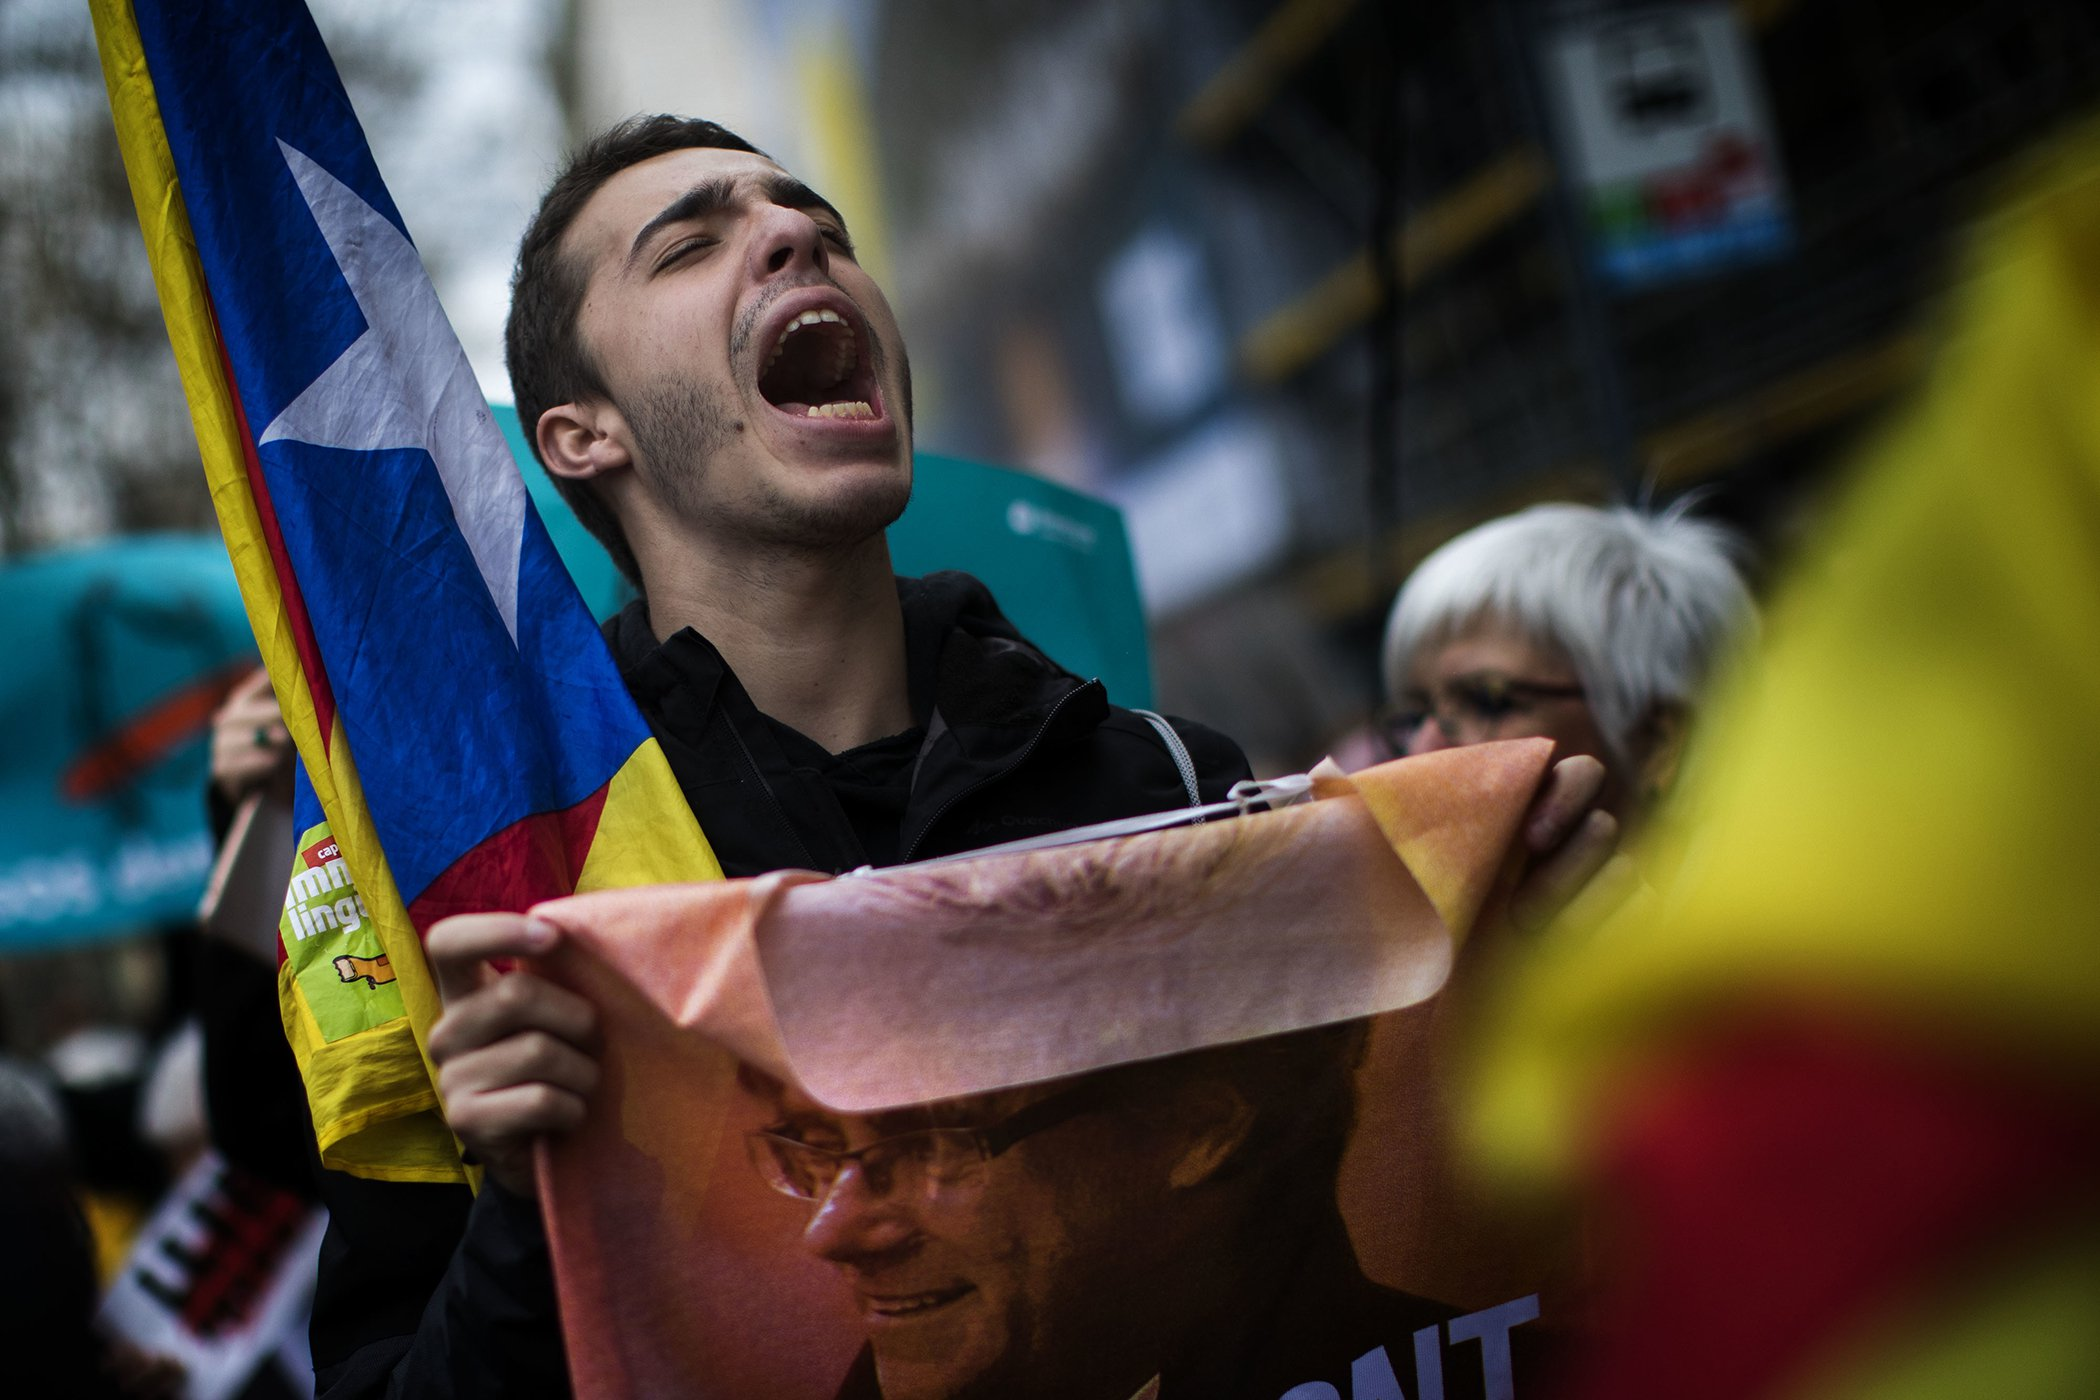 Protests-Catalonia-Spain-Independence.jpg